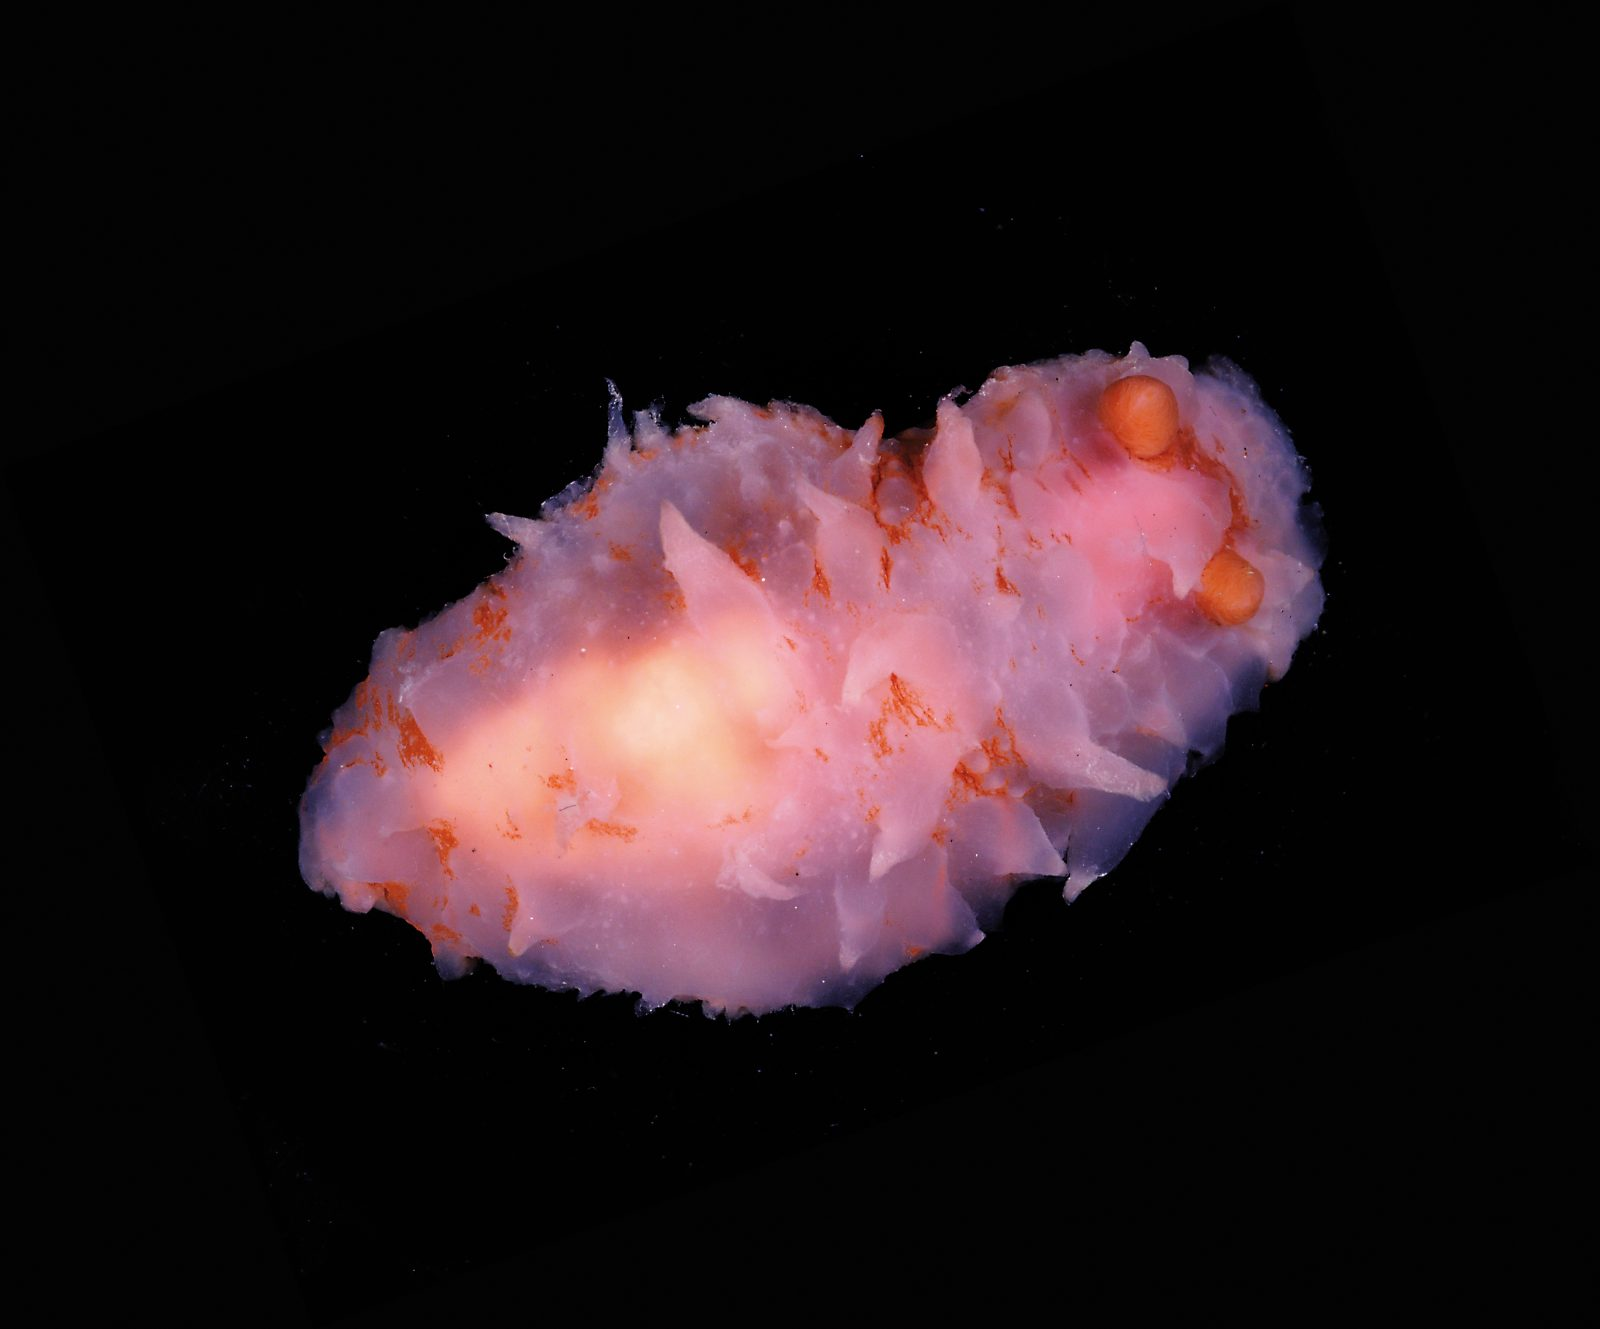 While much of the territory explored by NIWA has never been sampled before, scientists can usually identify most of the samples retrieved from the depths. Not so this mystery nudibranch discovered in a canyon at a depth of some 1200 metres—it remains unidentified even seven months later. It features orange rhinophores, the dramatic olfactory organs common to gastropods, and an array of soft pink cerata, horn-like structures that increase the surface area of its back for the purpose of respiration. Eighty per cent of New Zealand's biodiversity is found in the sea, and with most of our ocean territory unexplored, many marine species are yet to be discovered.